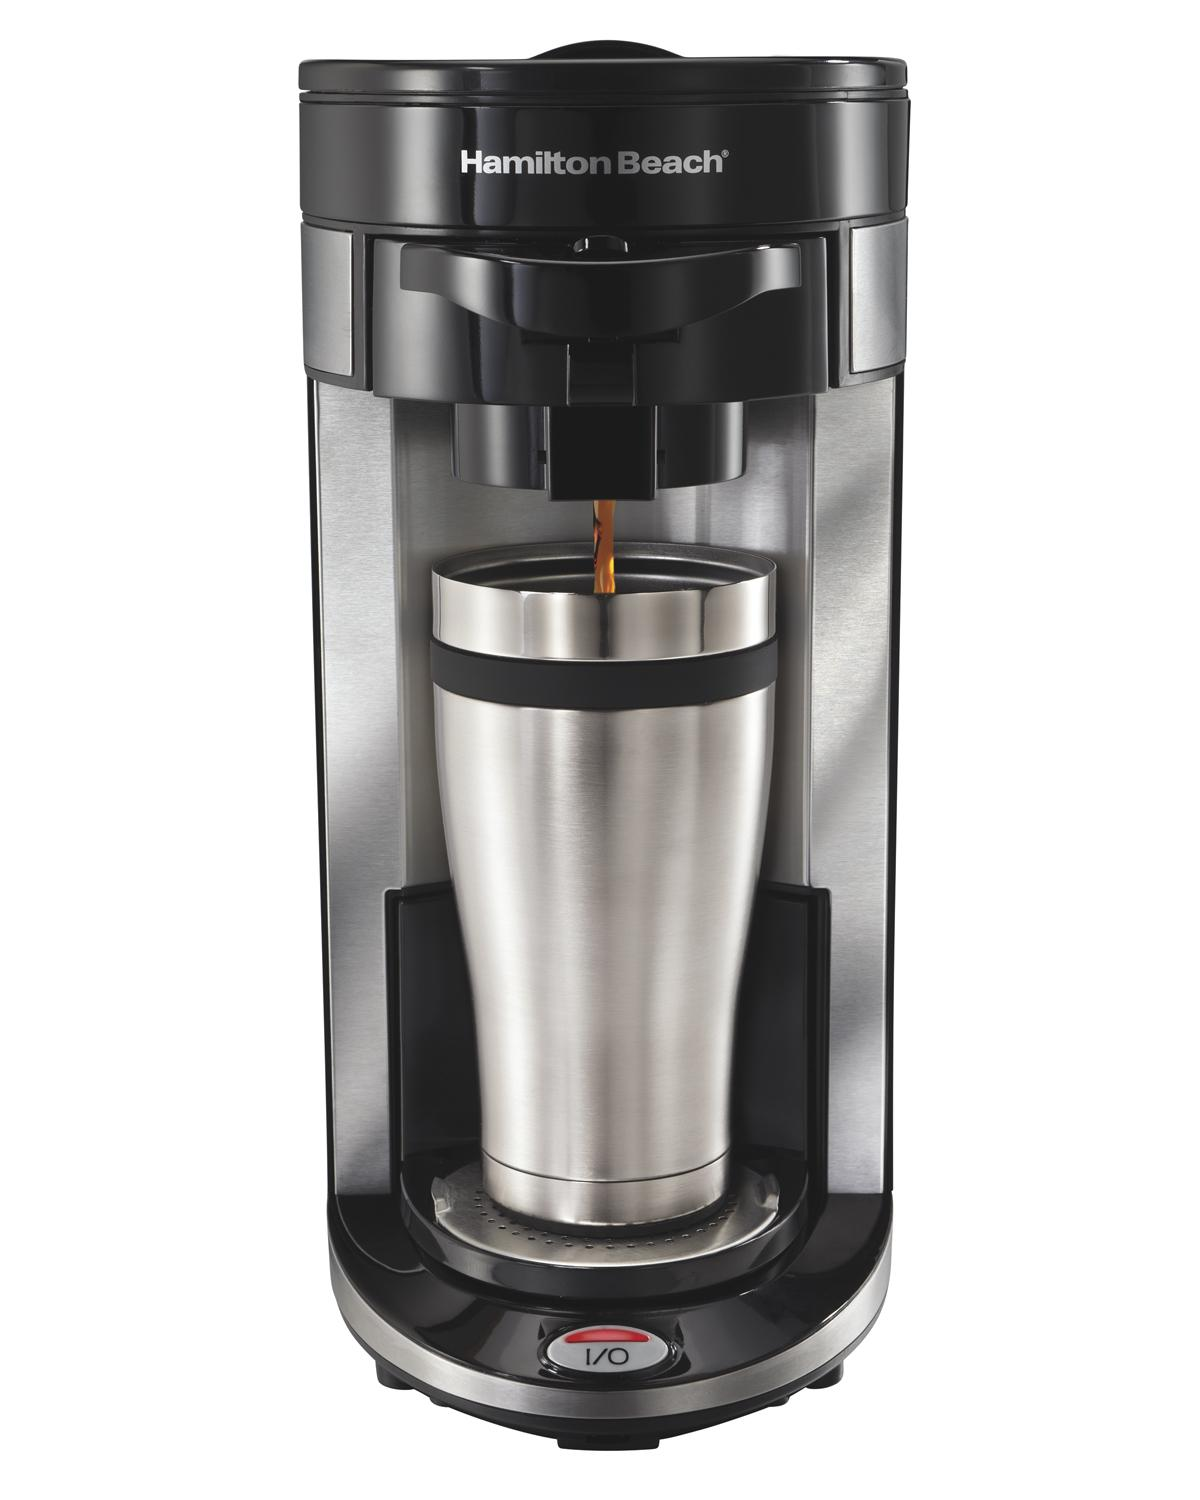 Amazon.com: Hamilton Beach Single-Serve Coffee Maker